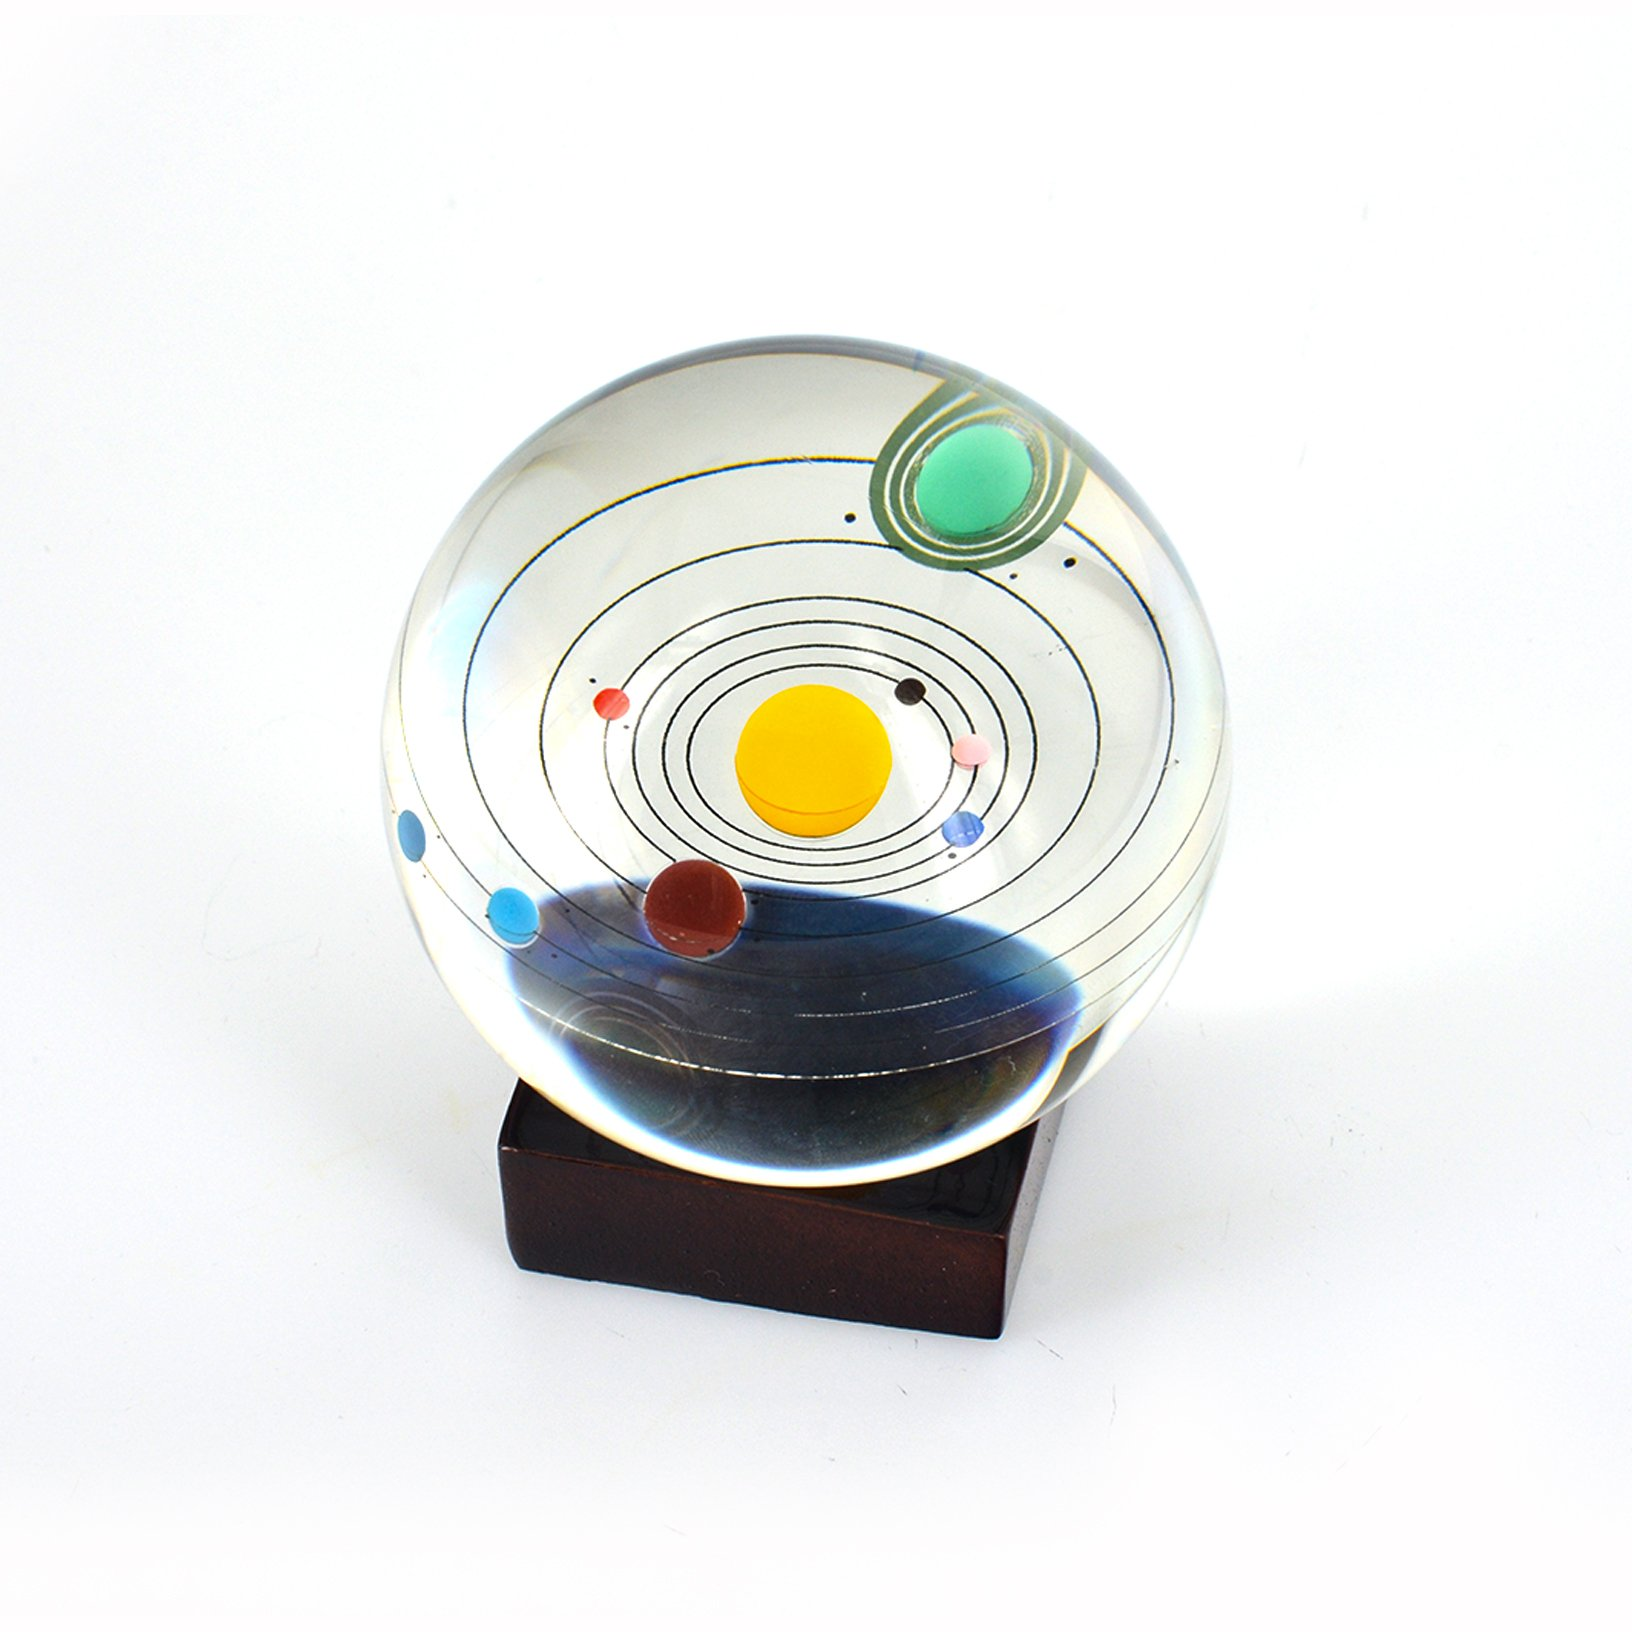 Toyofmine Solar System Clear Crystal Ball 80mm with Wood Stand by toyofmine (Image #1)